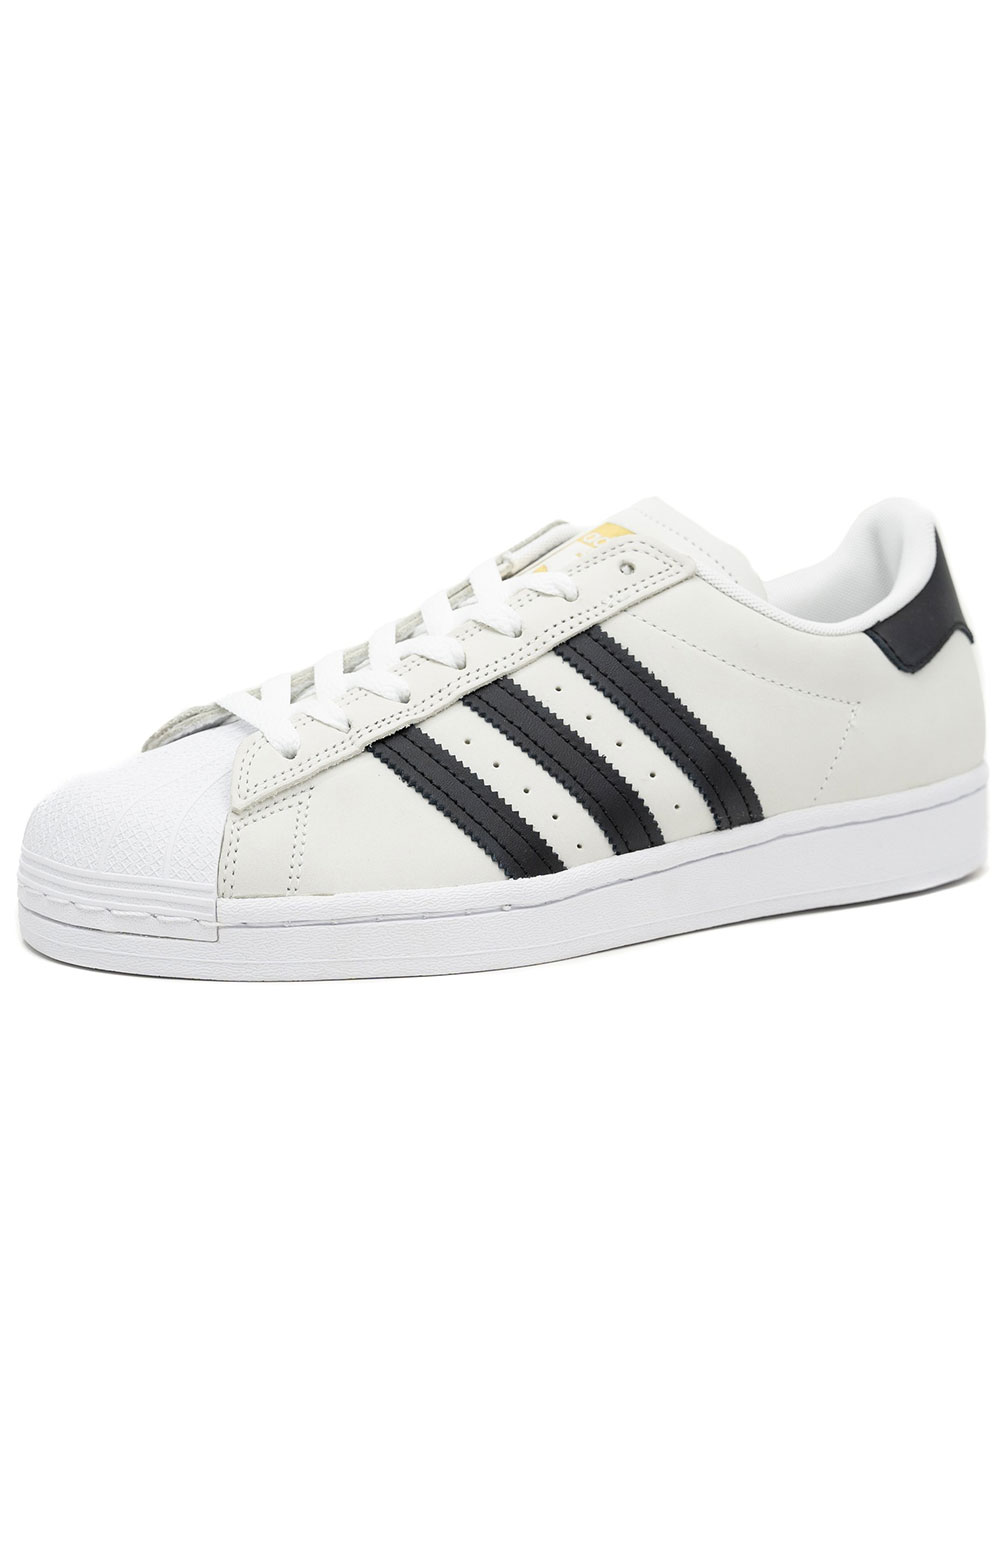 (FV0322) Superstar Adv Shoes - White/Black 2